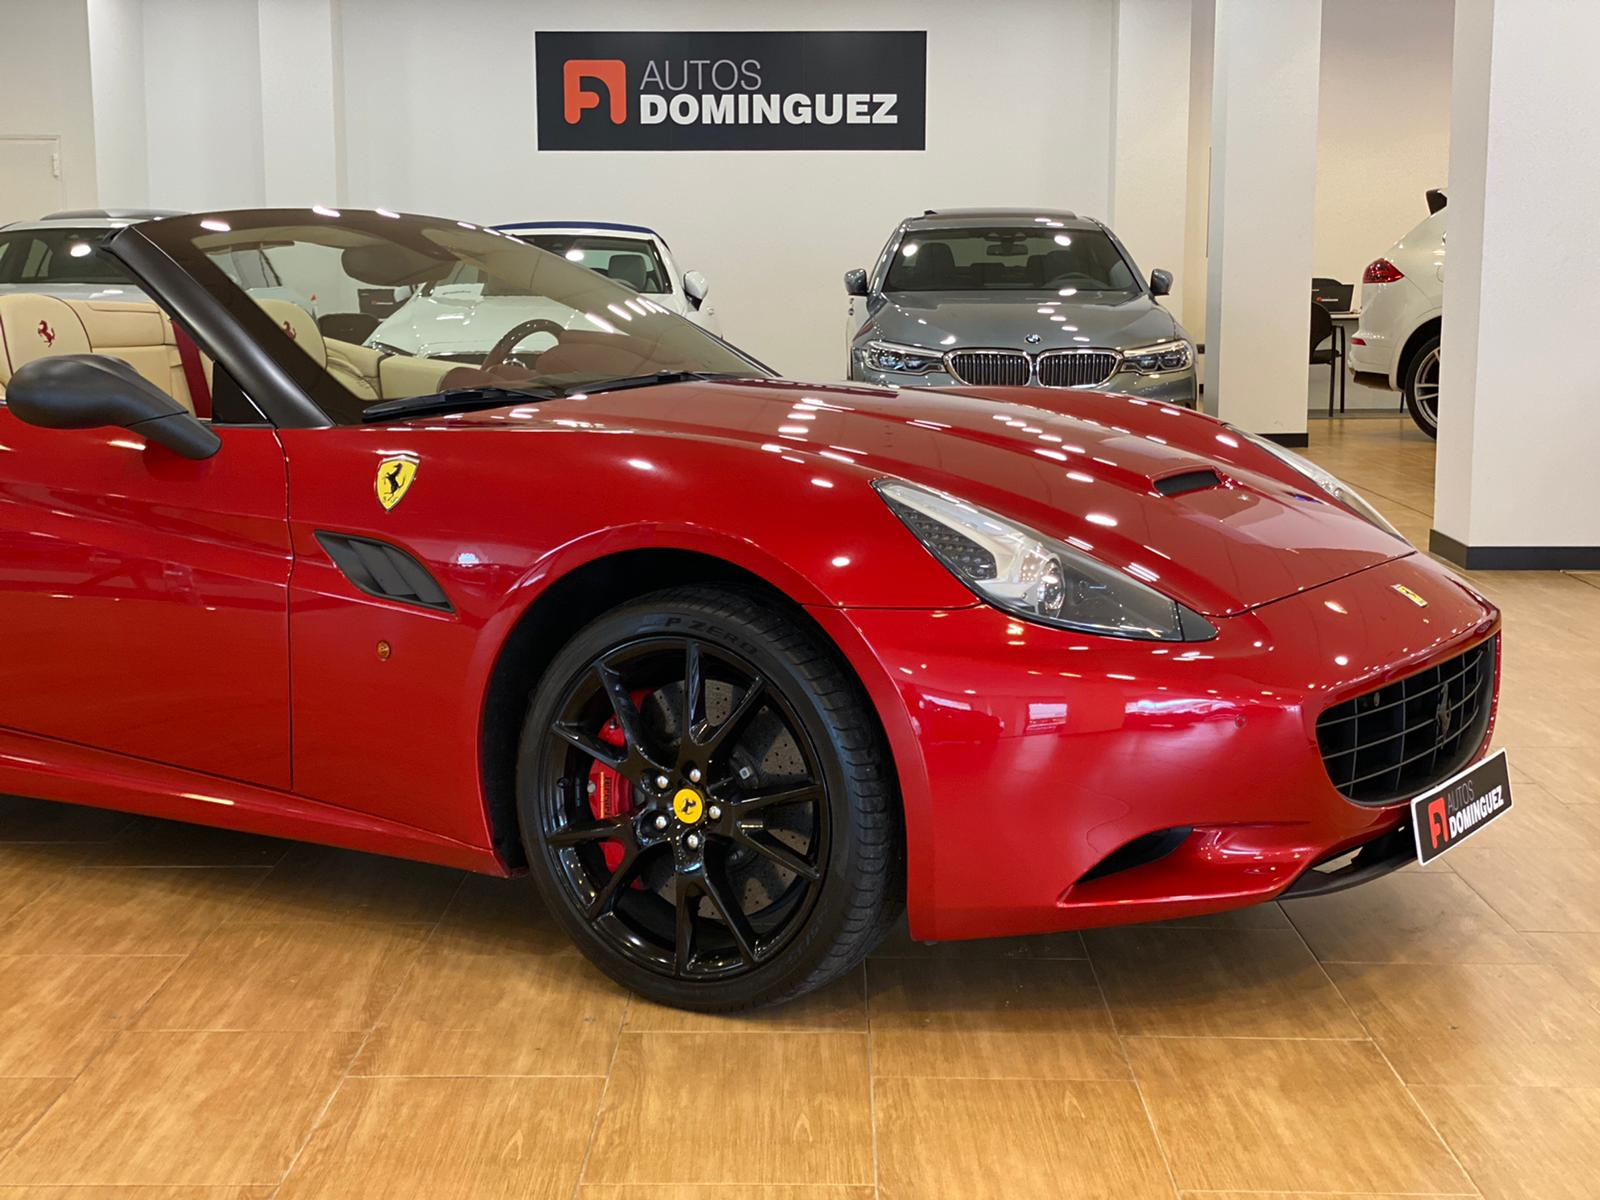 FERRARI CALIFORNIA TAILOR MADE 4 PLAZAS 460 CV 4